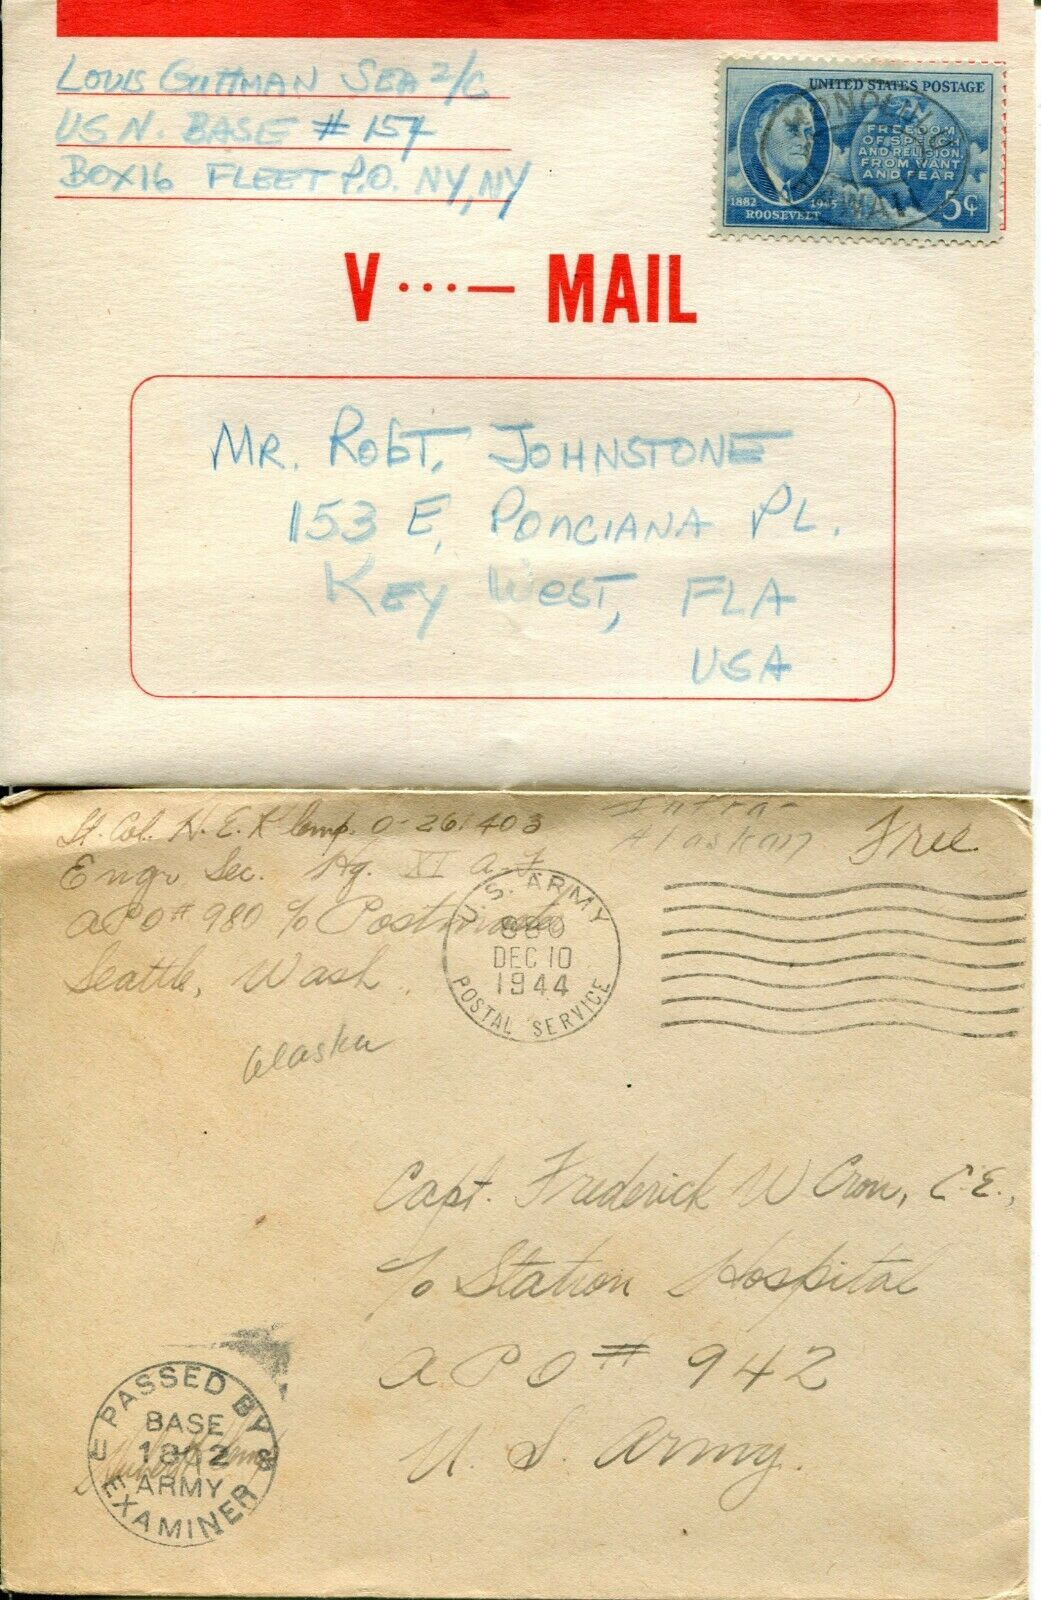 US Army Airmail WWII APO Navy Military Cover Examined Postage Collection  image 8